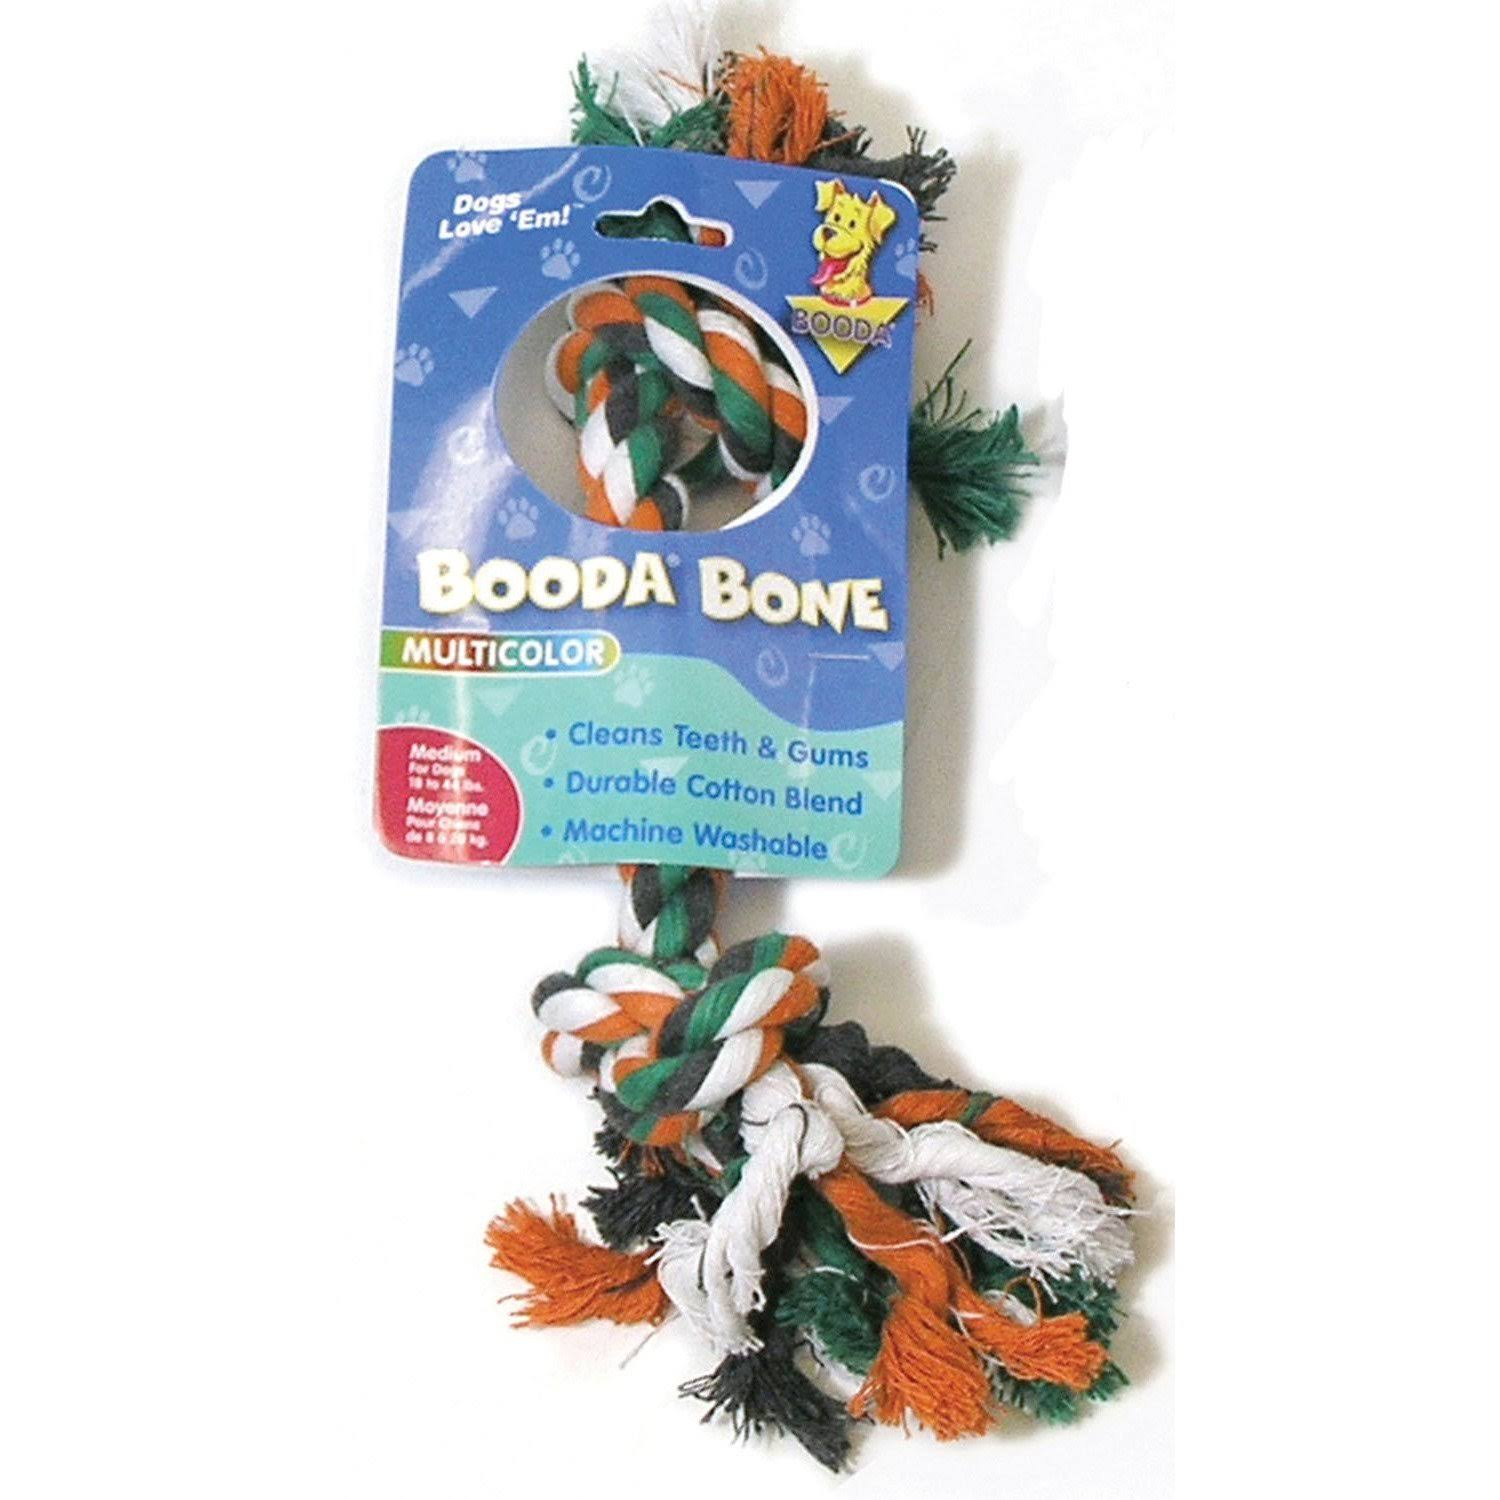 Booda Medium 2-knot Multi-color Rope Bone Dog Toy